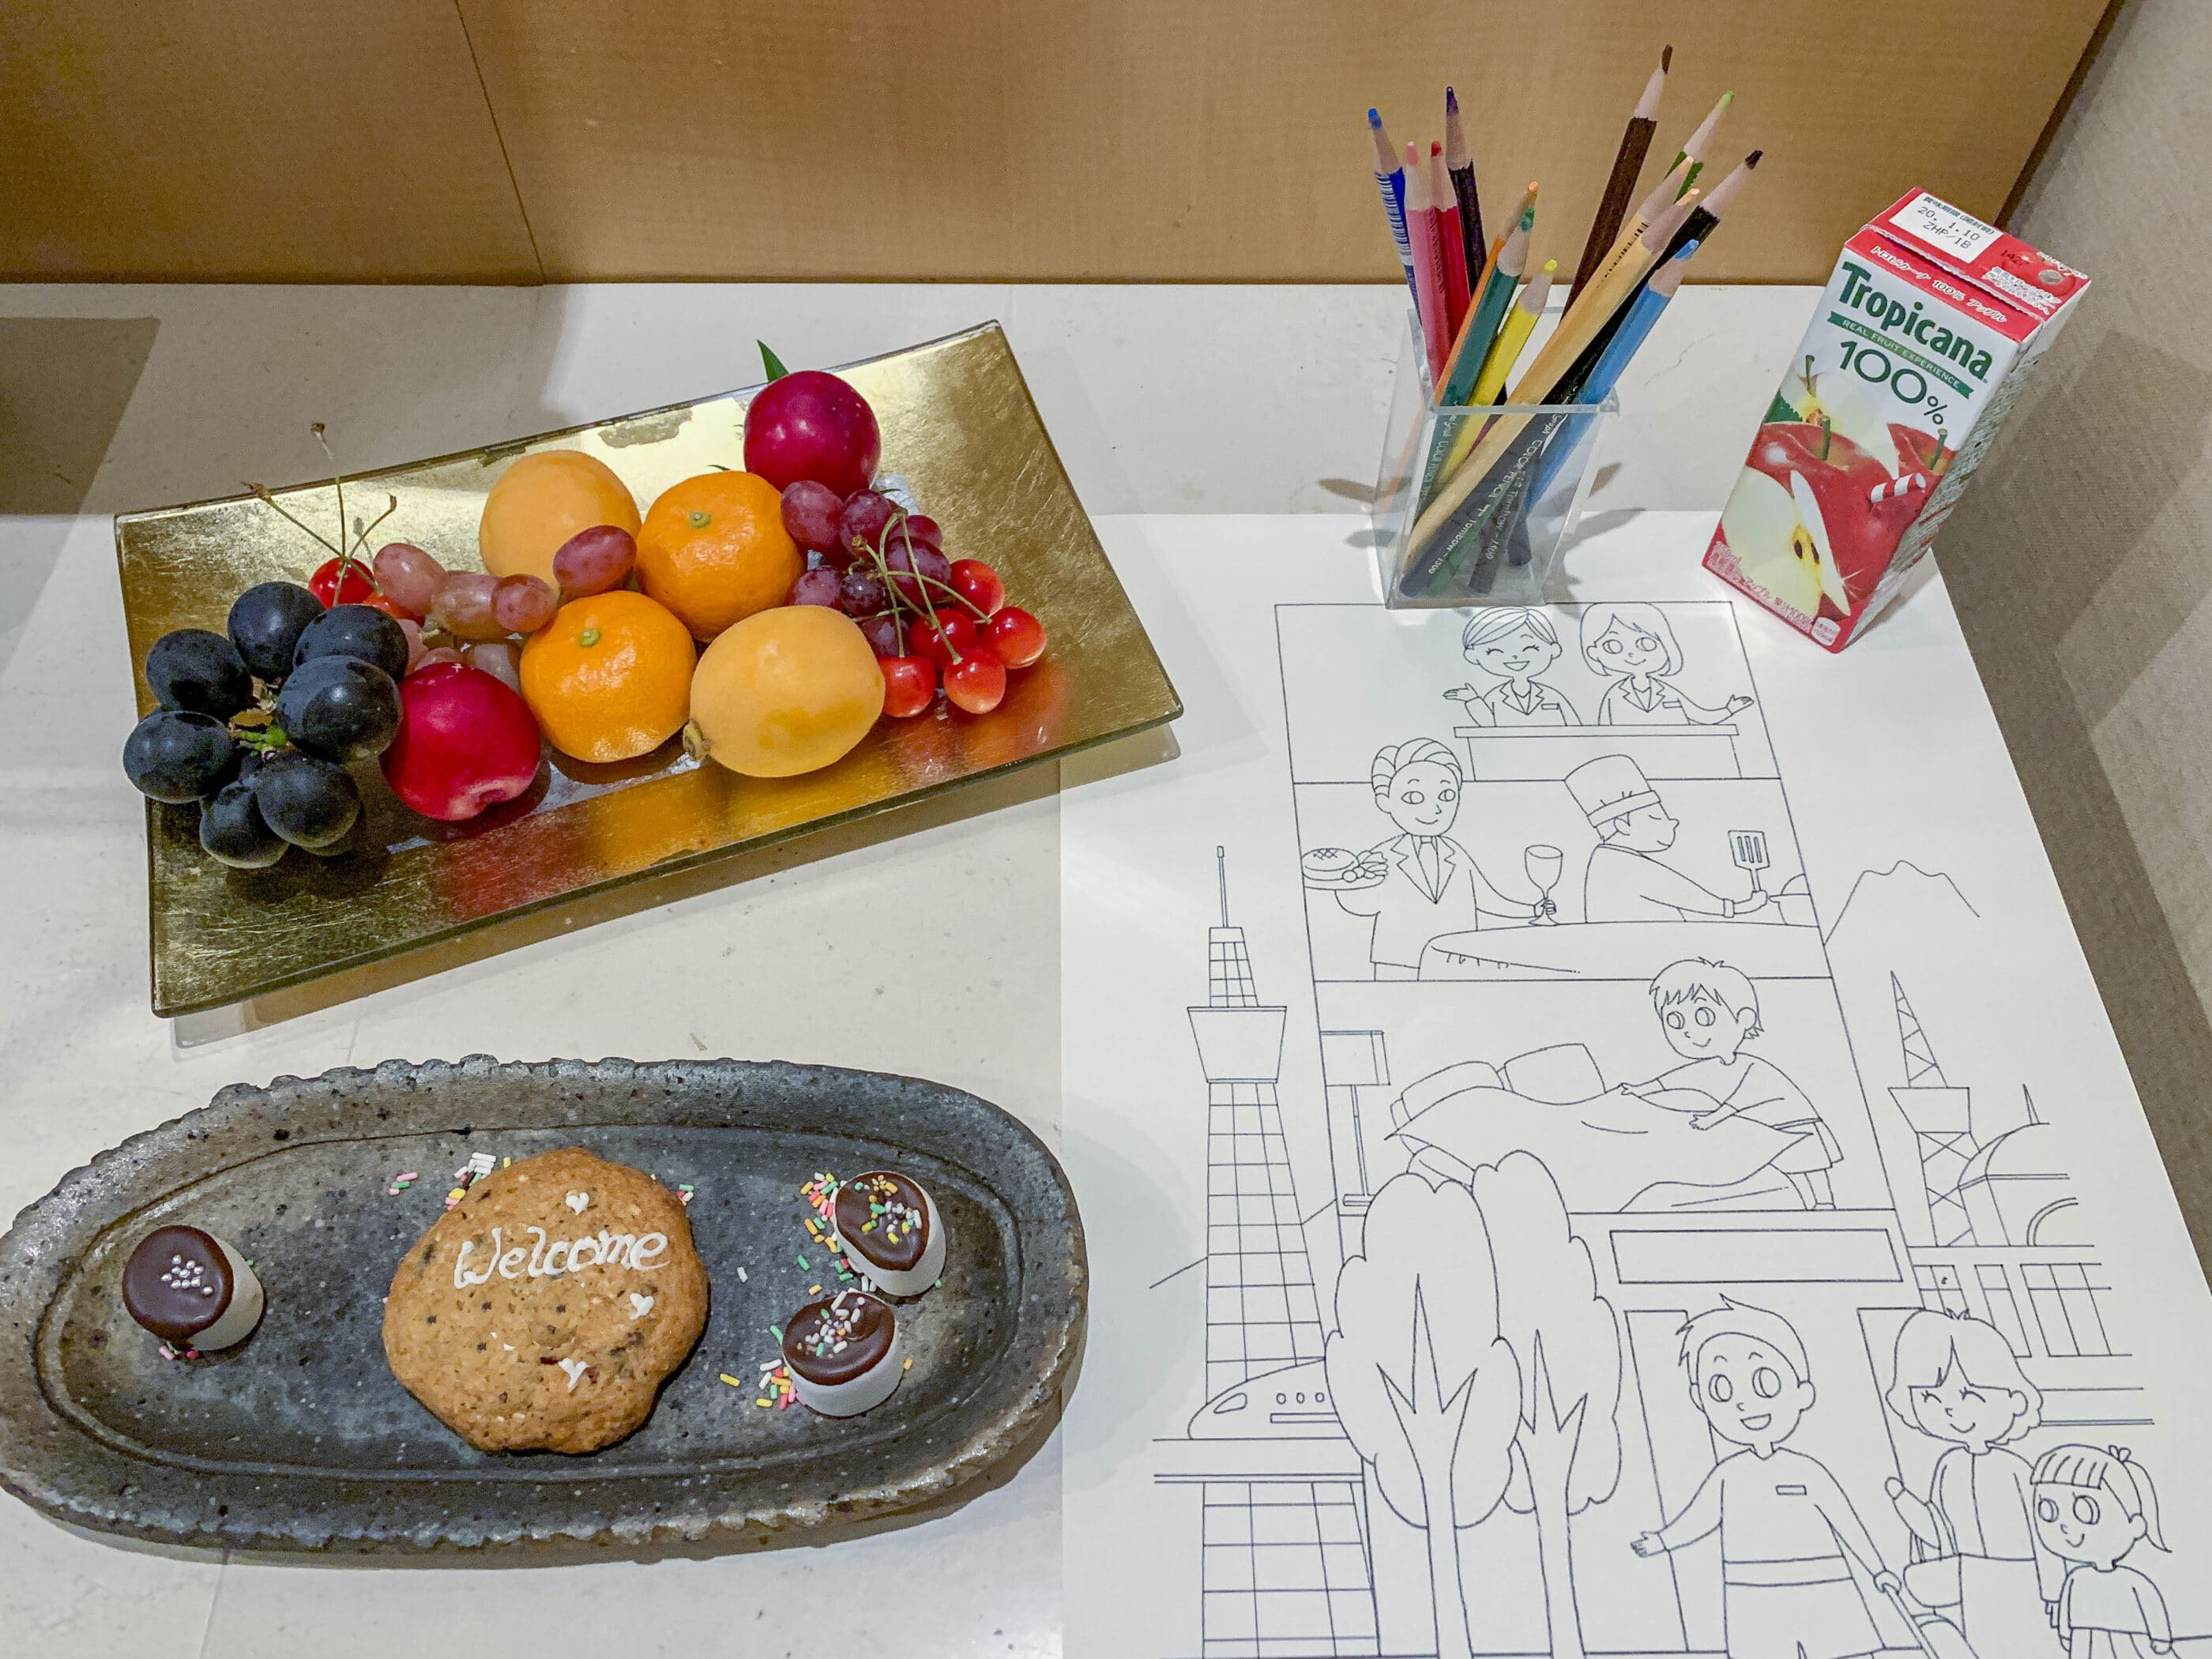 In-room welcome amenities of fruit in addition to a juice box and plate of sweets for kids next to colored pencils and a coloring sheet featuring Tokyo sights.